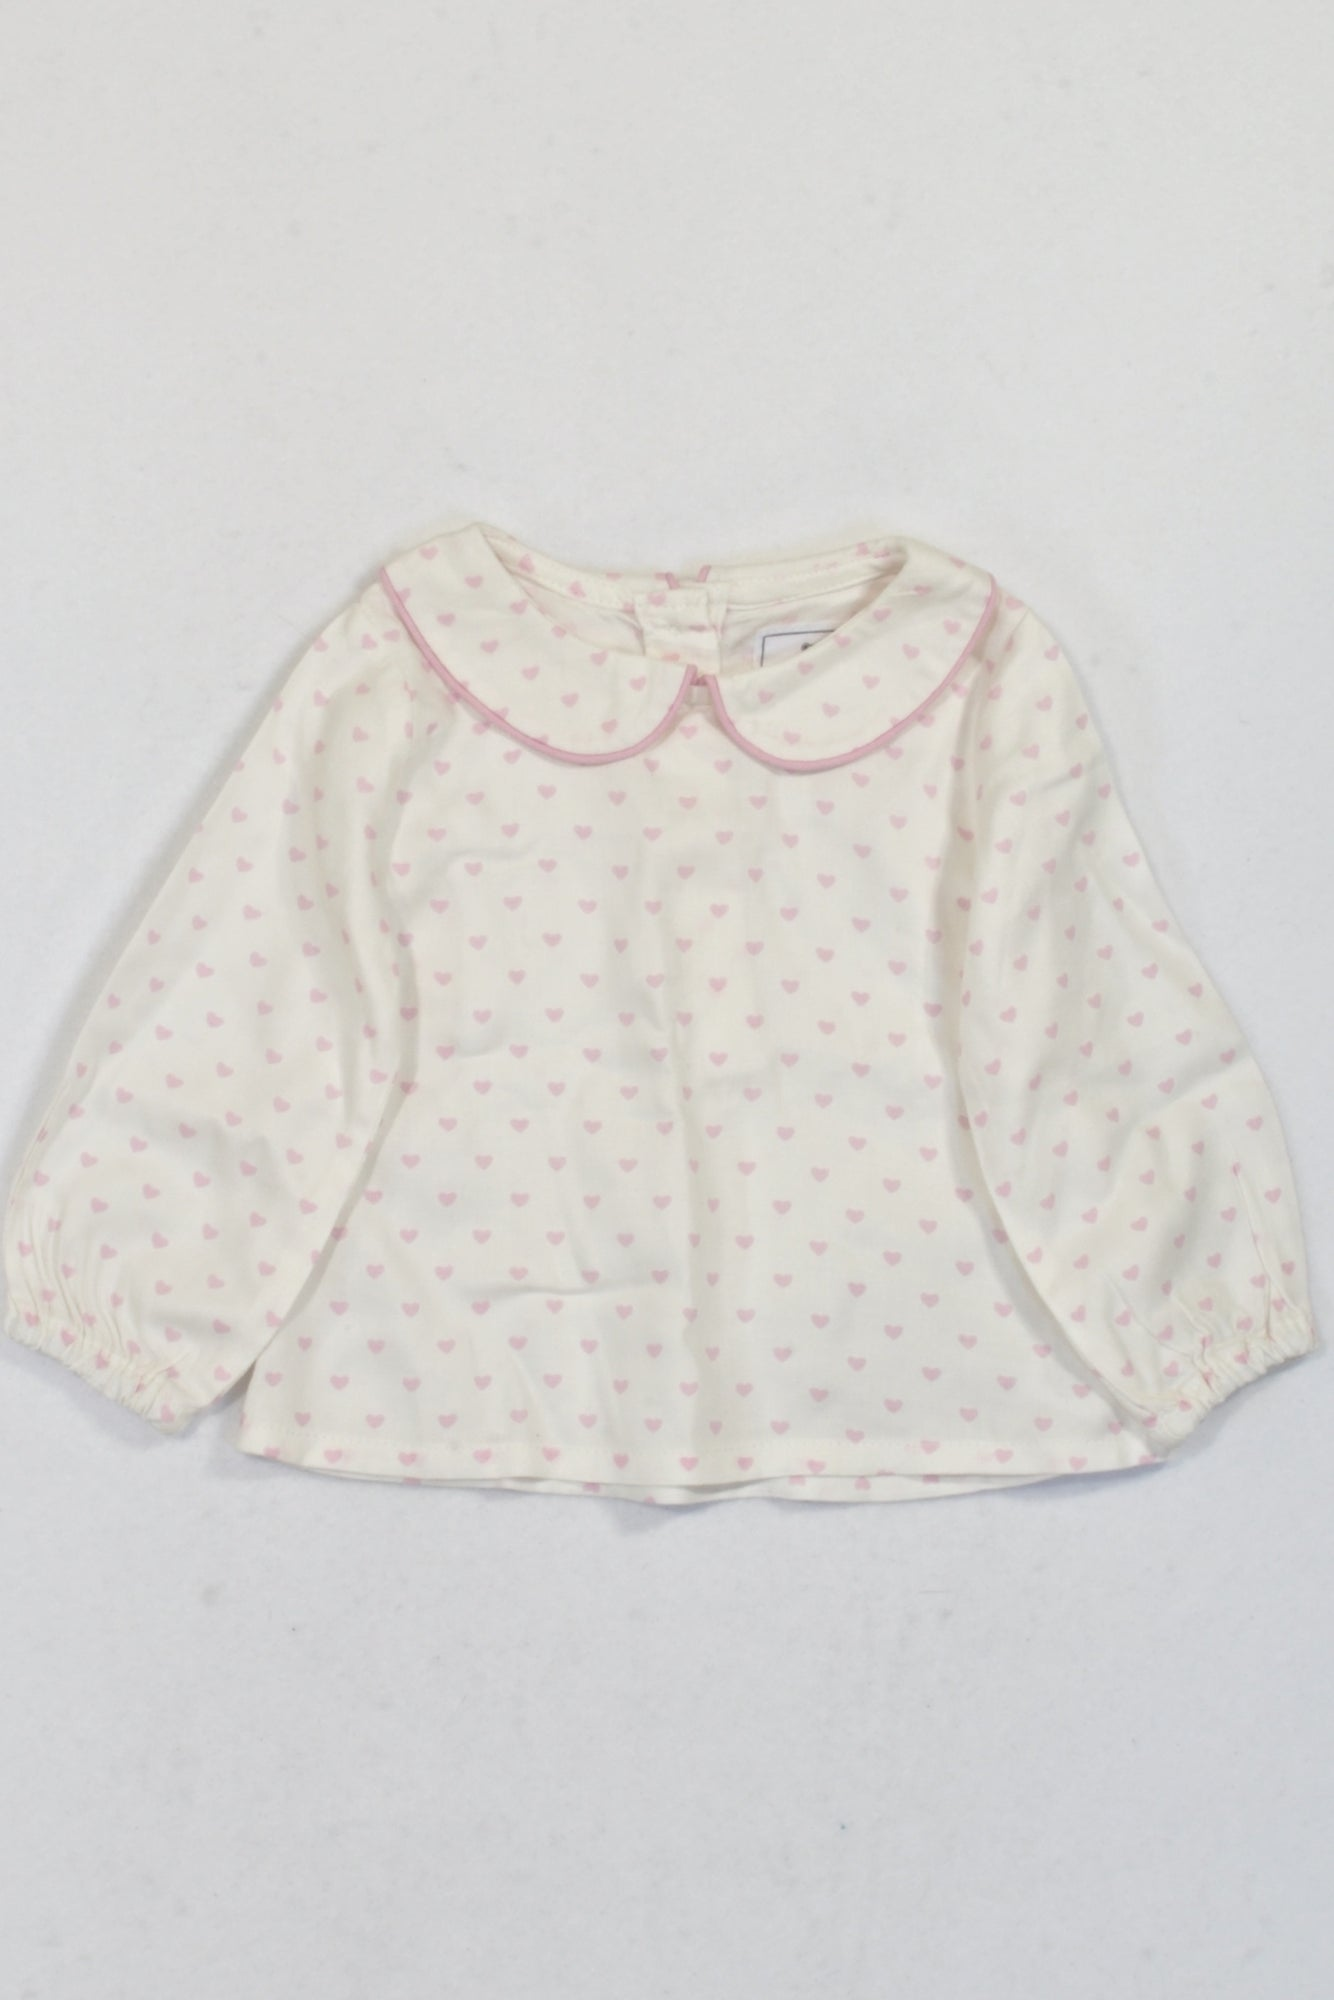 New Cream Heart Peter Pan Collar Blouse Girls 3-6 months